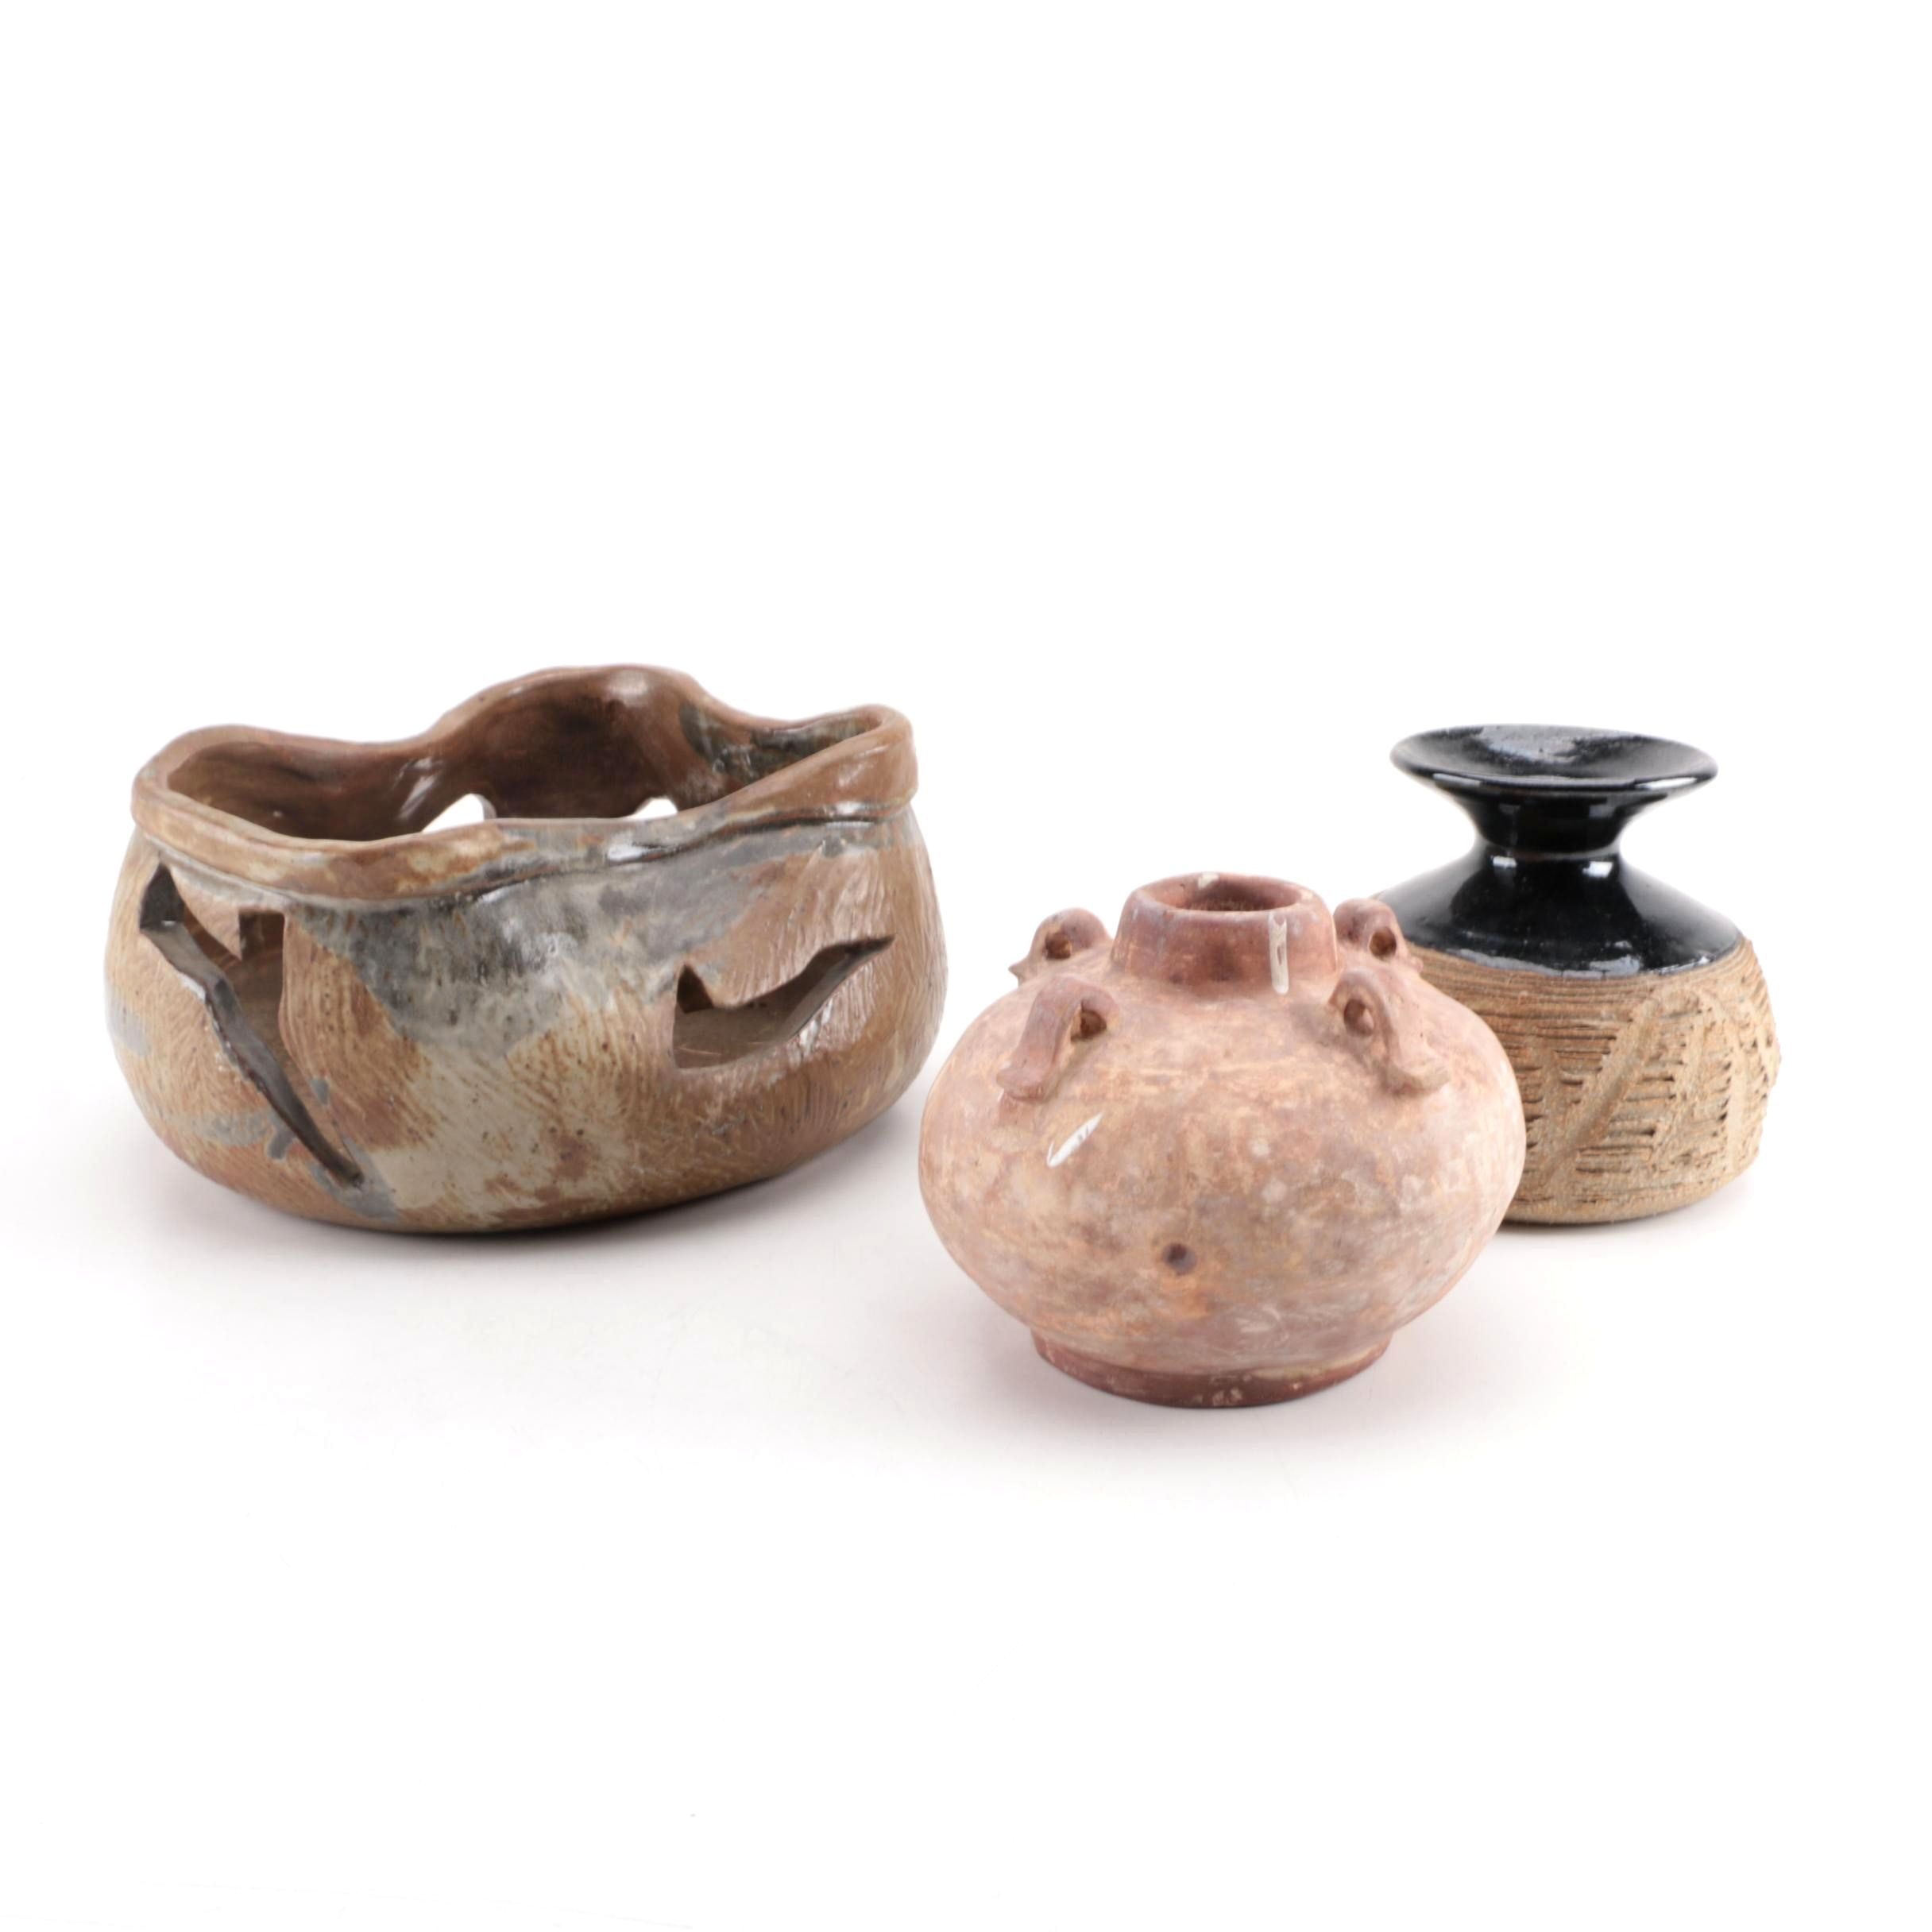 Handbuilt and Thrown Stoneware Vases and Bowl